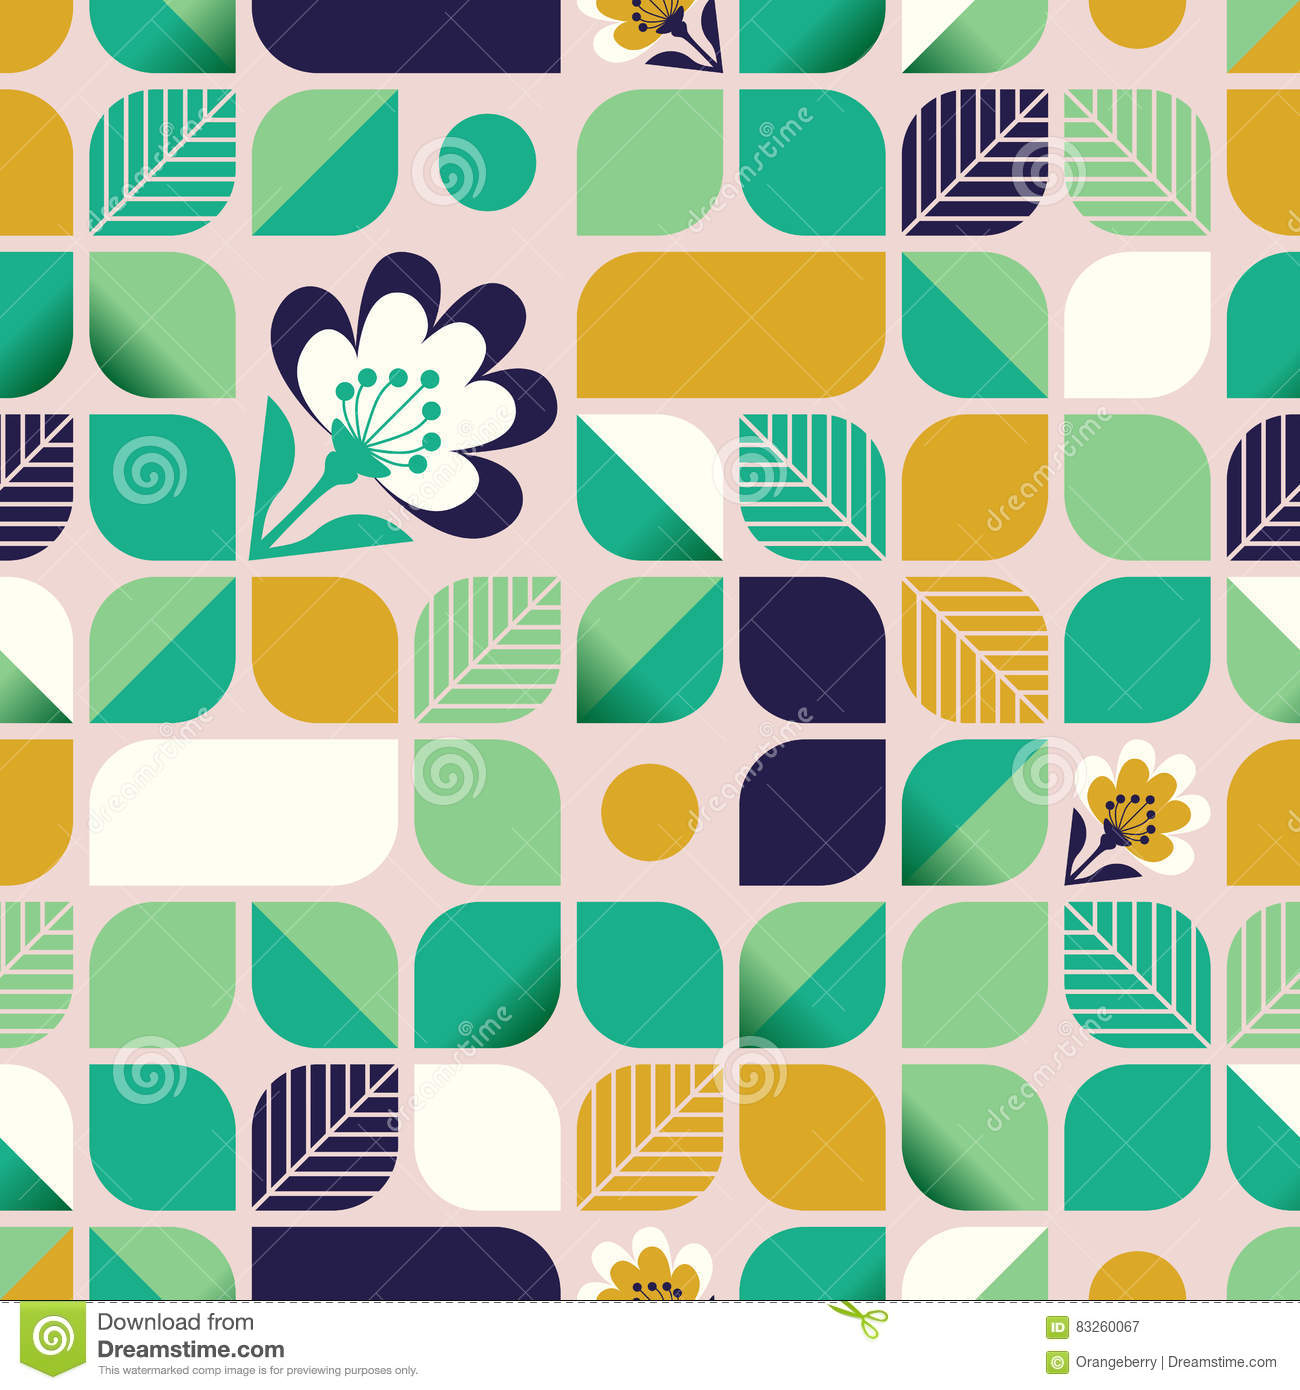 Seamless geometric pattern with leaves and flowers